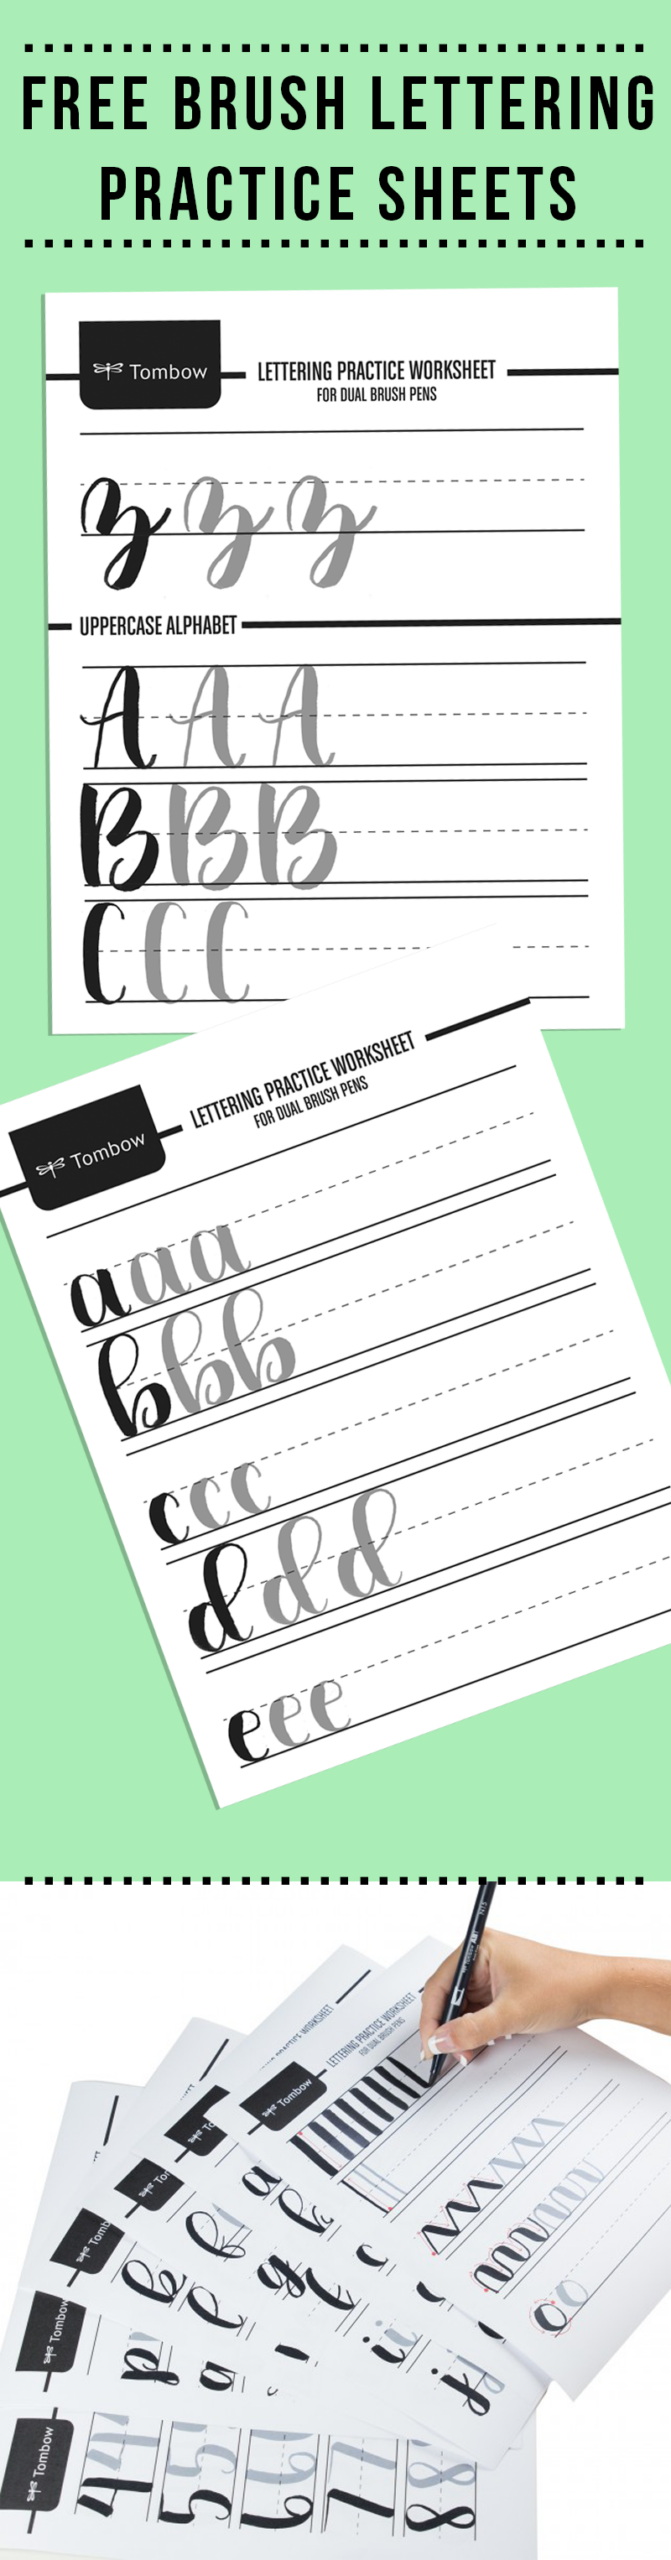 Free Brush Lettering Practice Sheets